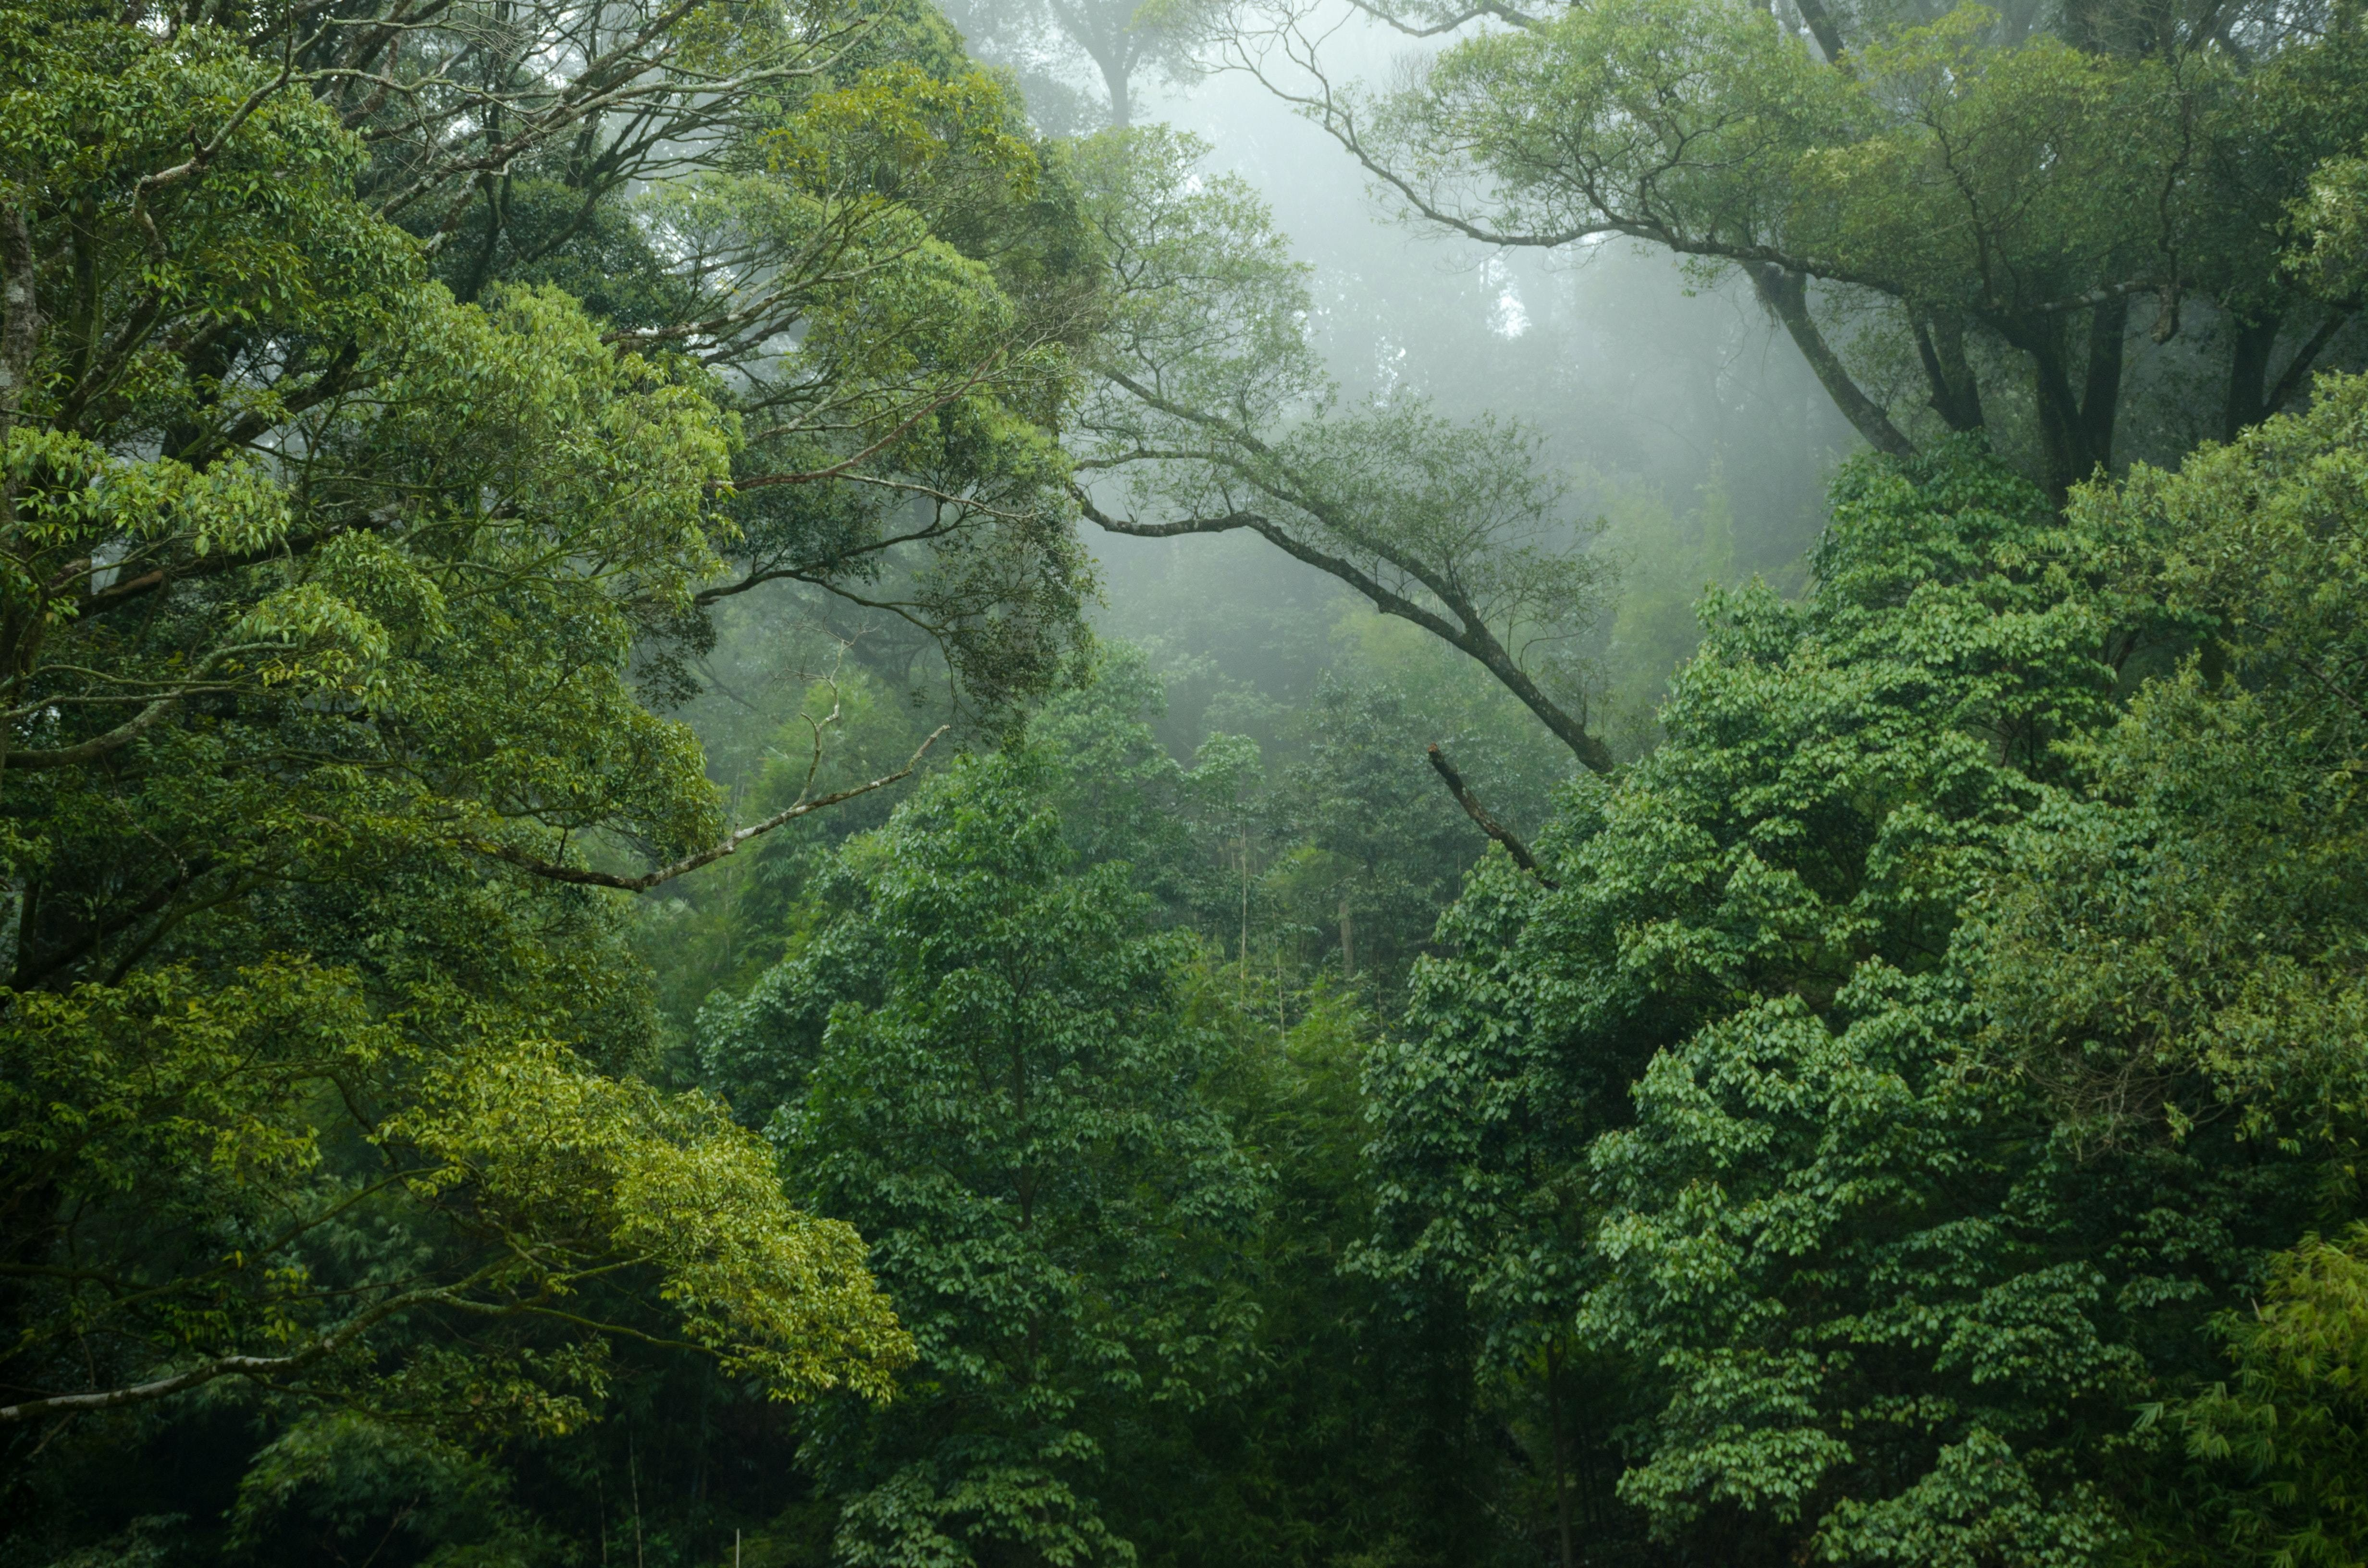 carbon-rich forests, like this forest here, must be protected in order to save the planet